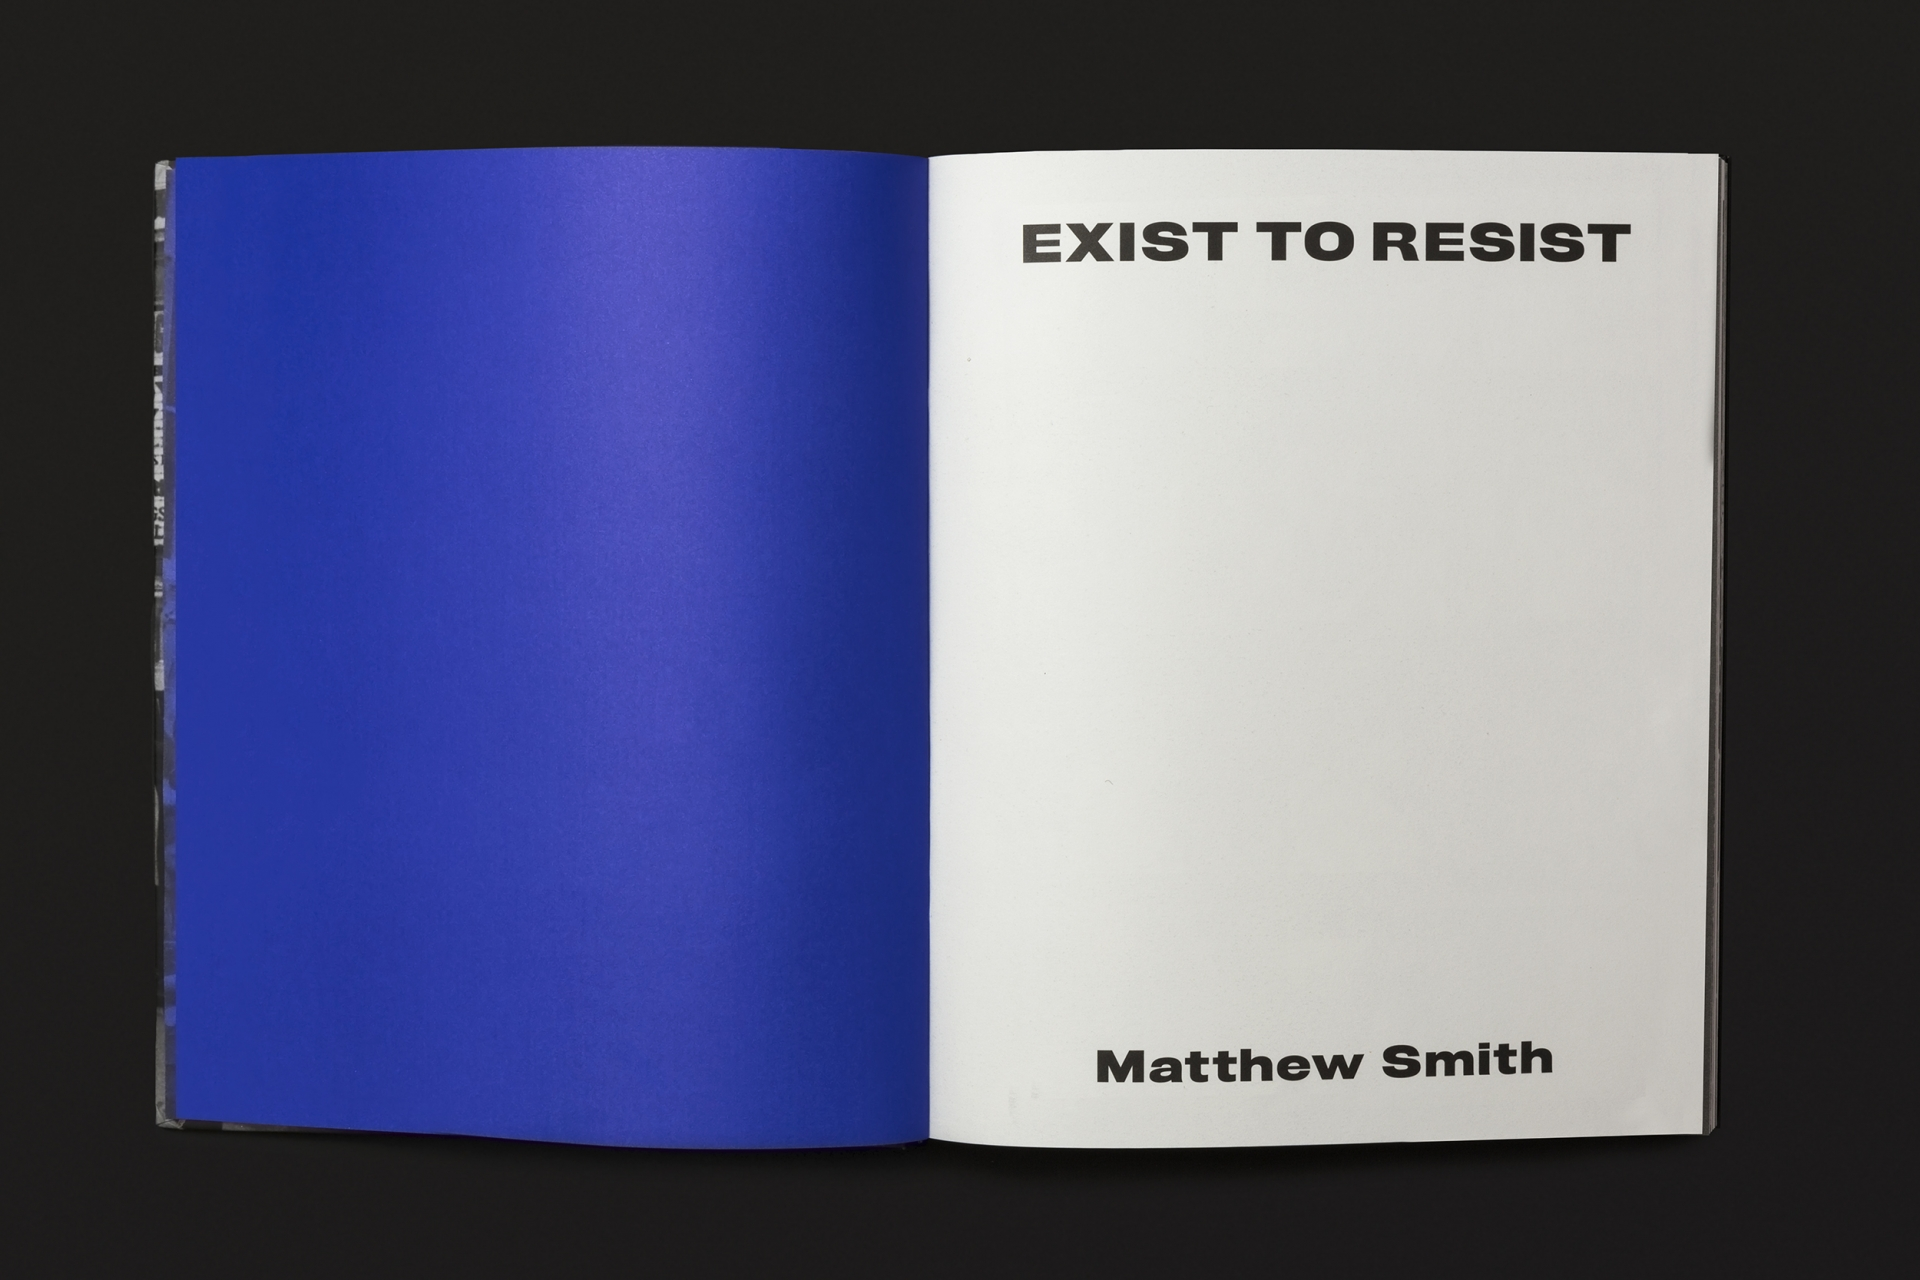 Patrick Fry Studio Exist to Resist